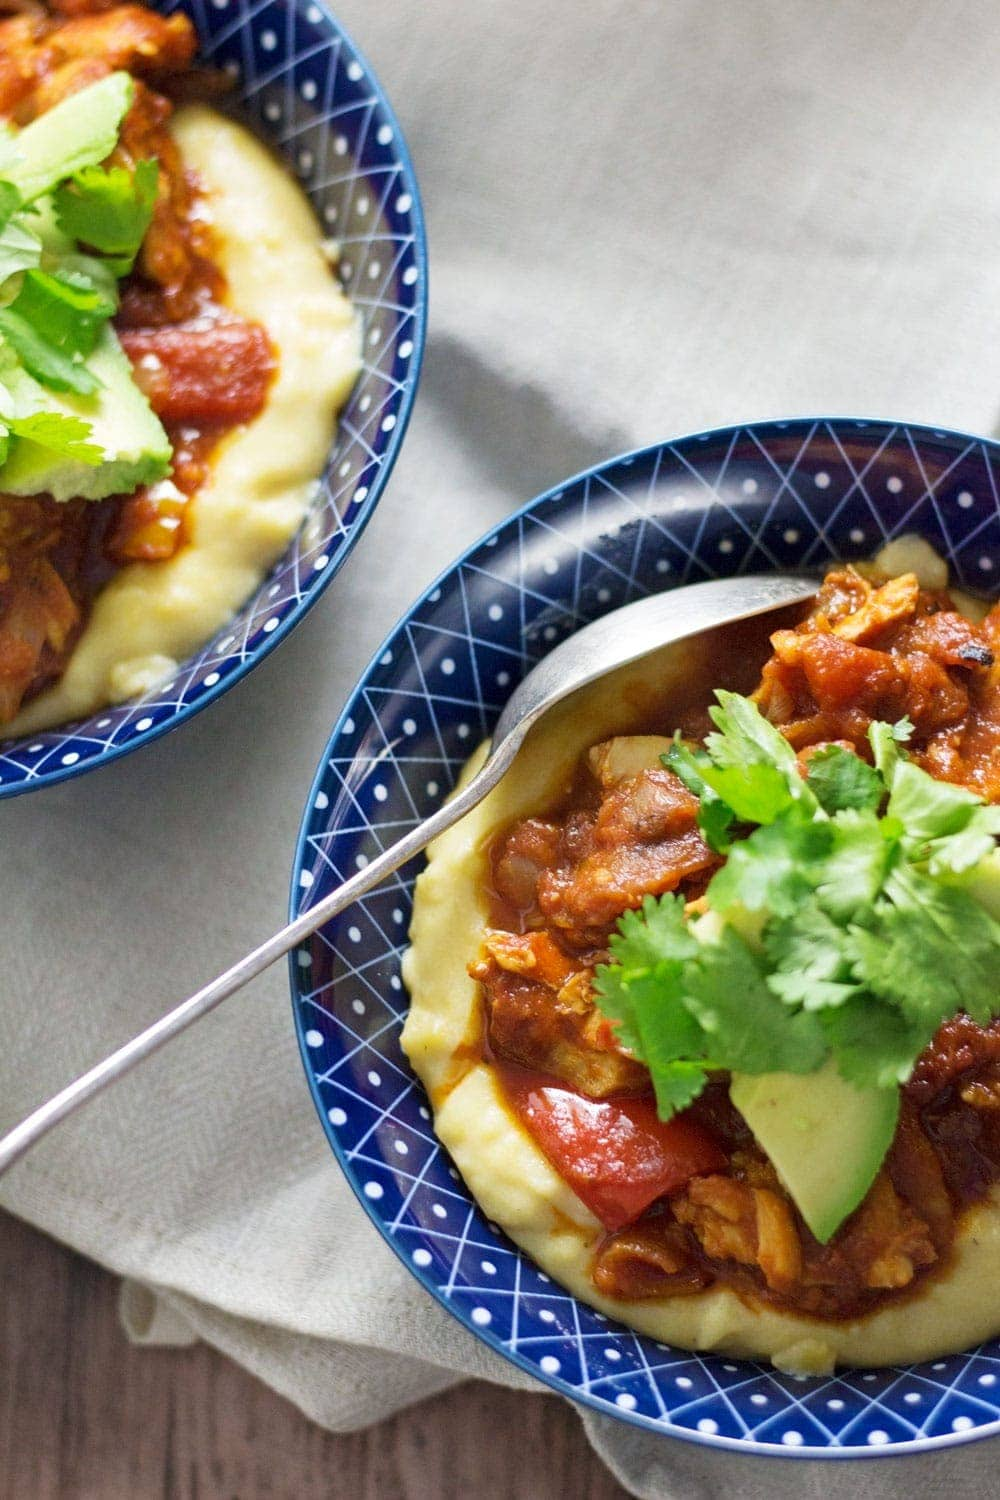 These spicy chicken burrito bowls with cheesy polenta are extreme comfort food and surprisingly quick to make! They're the perfect weeknight winter dinner.